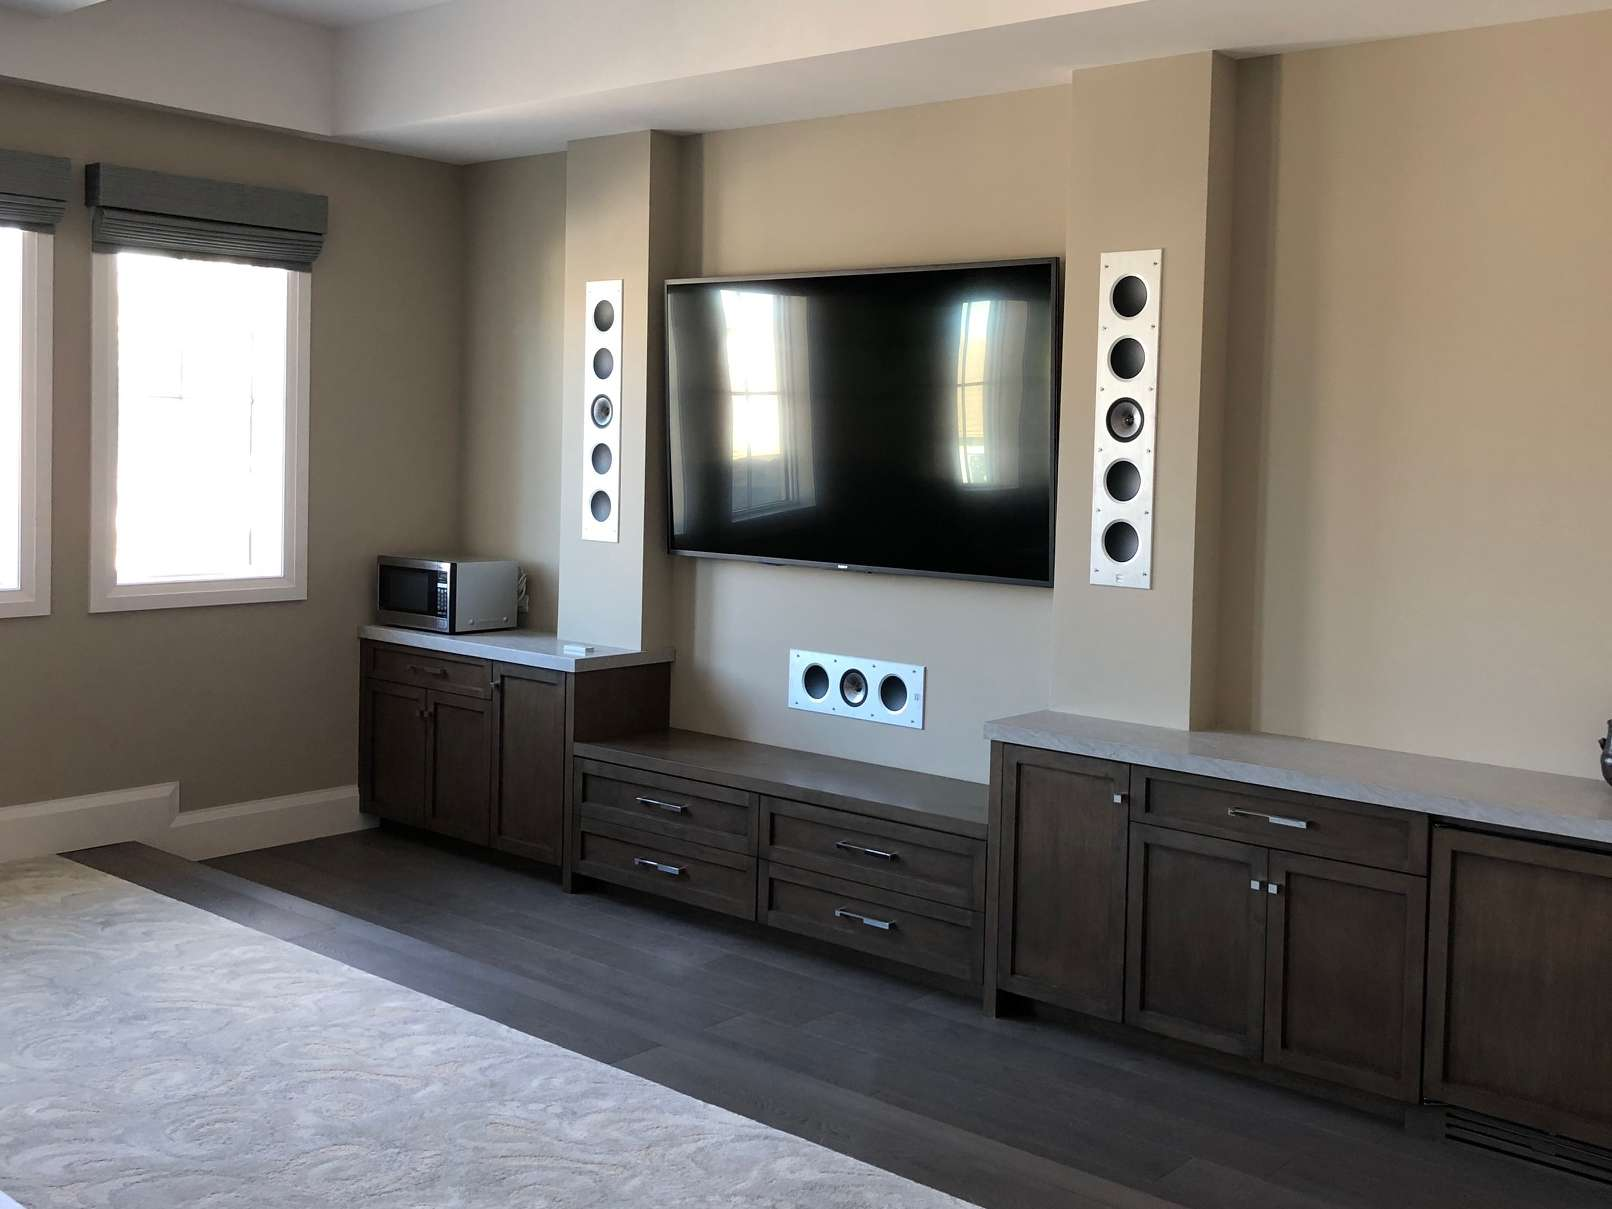 How will you enjoy your home theater?